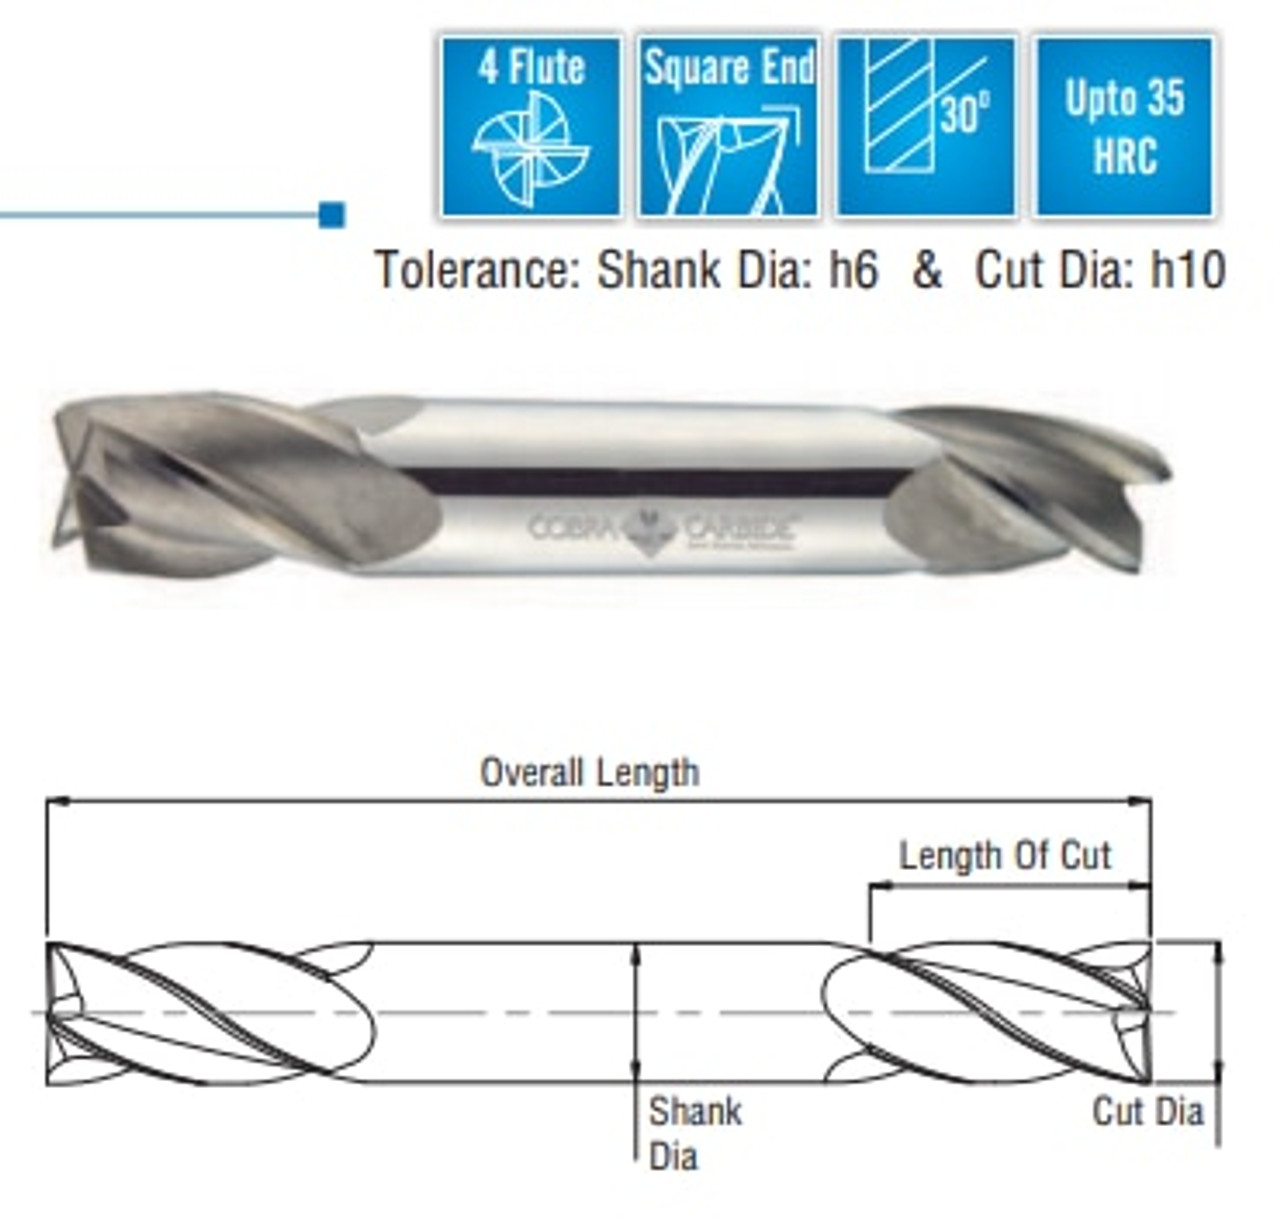 4 Flute,1//4 Dia. Tialn-Coated Solid Carbide Square End Mill